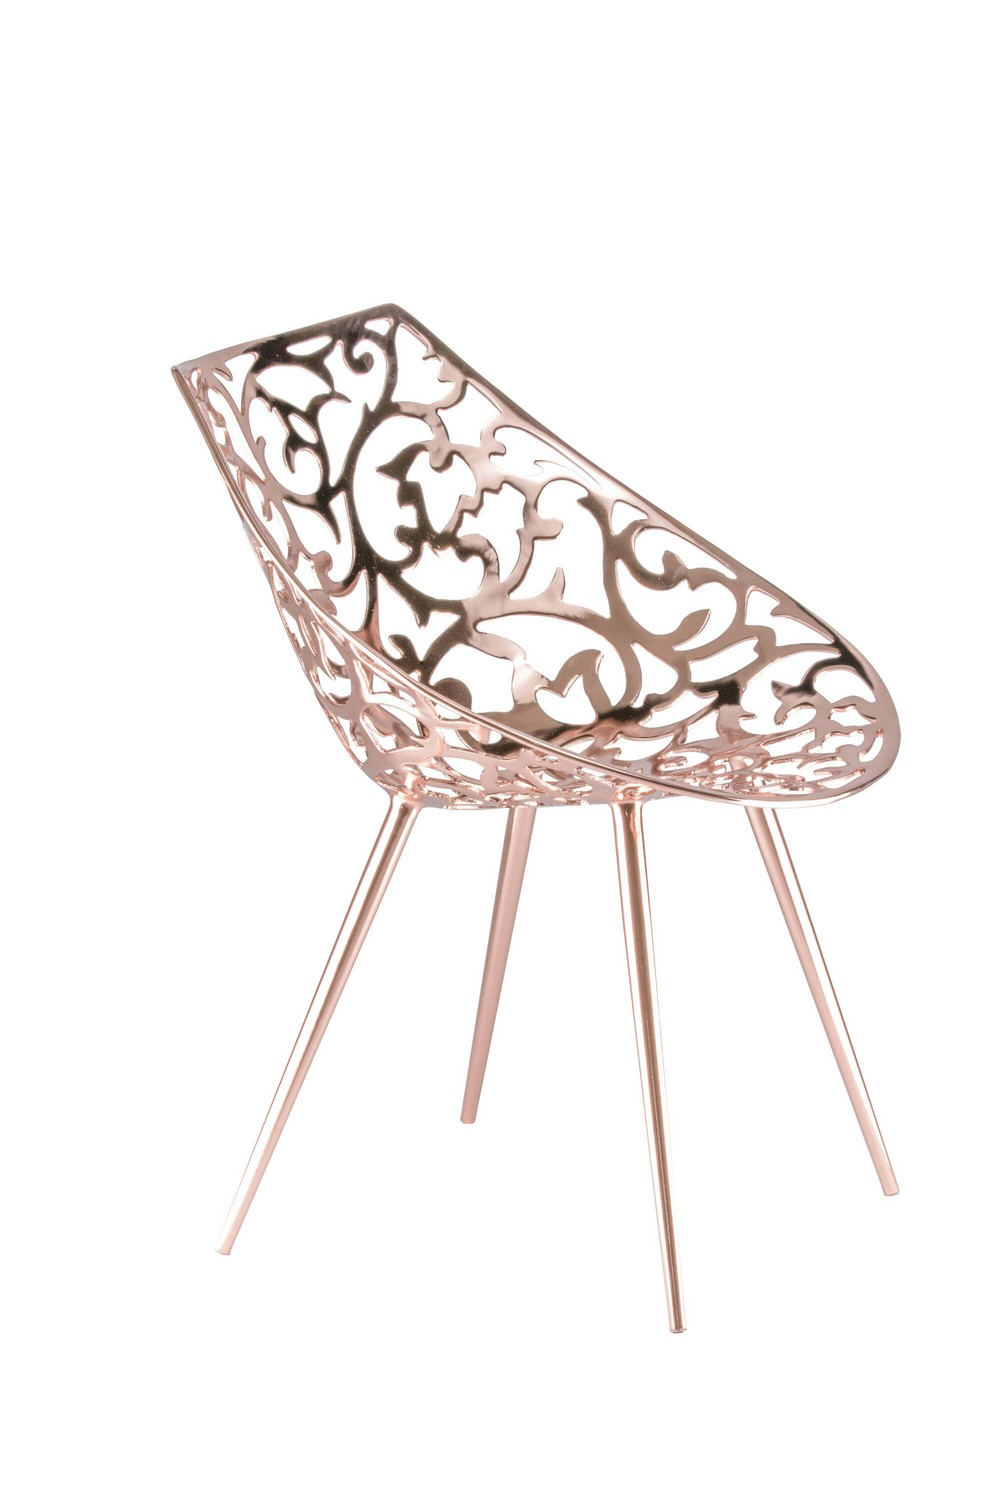 best designers A look into the works of some of the best designers of today Philippe Starck1